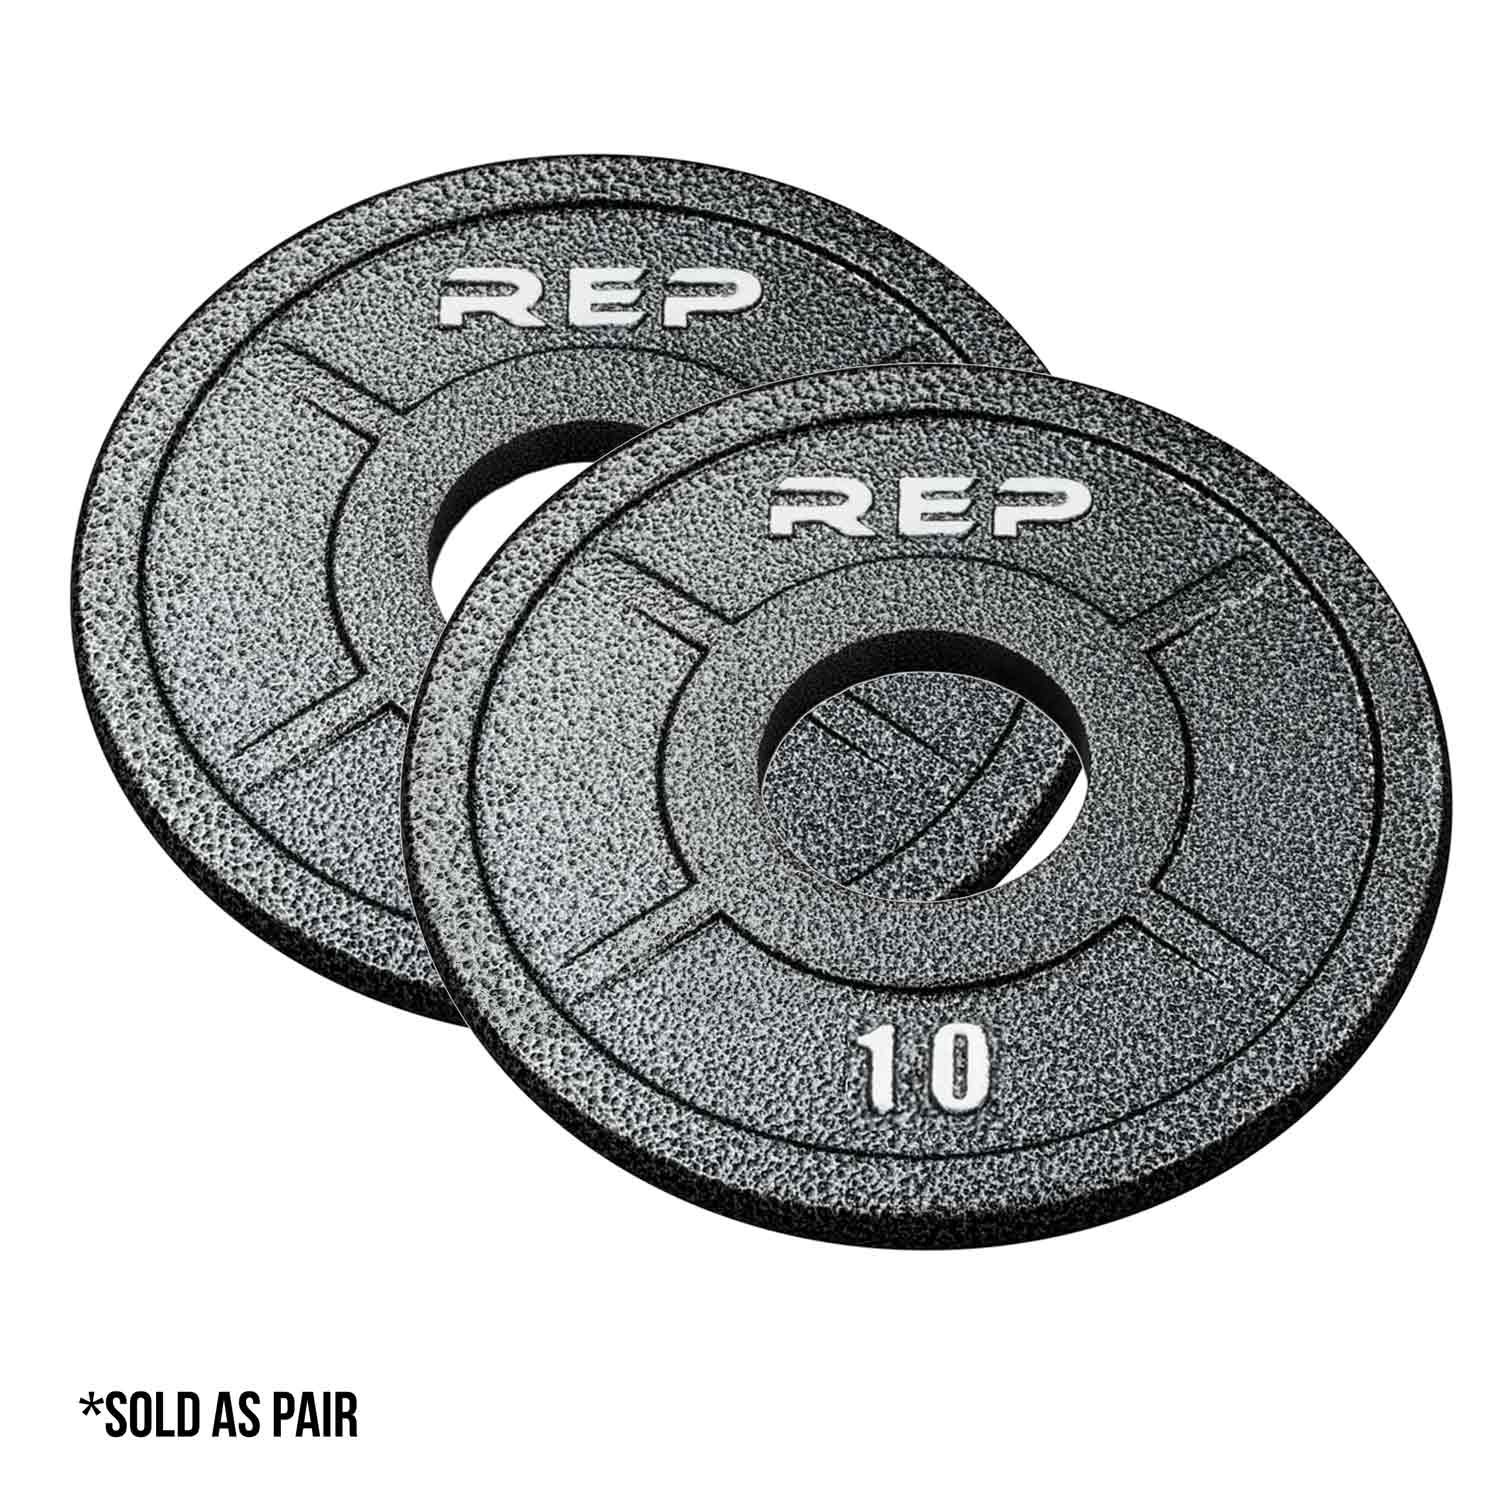 Rep Fitness Rep Gray Equalizer Iron Olympic Plates, 10 lb Pair